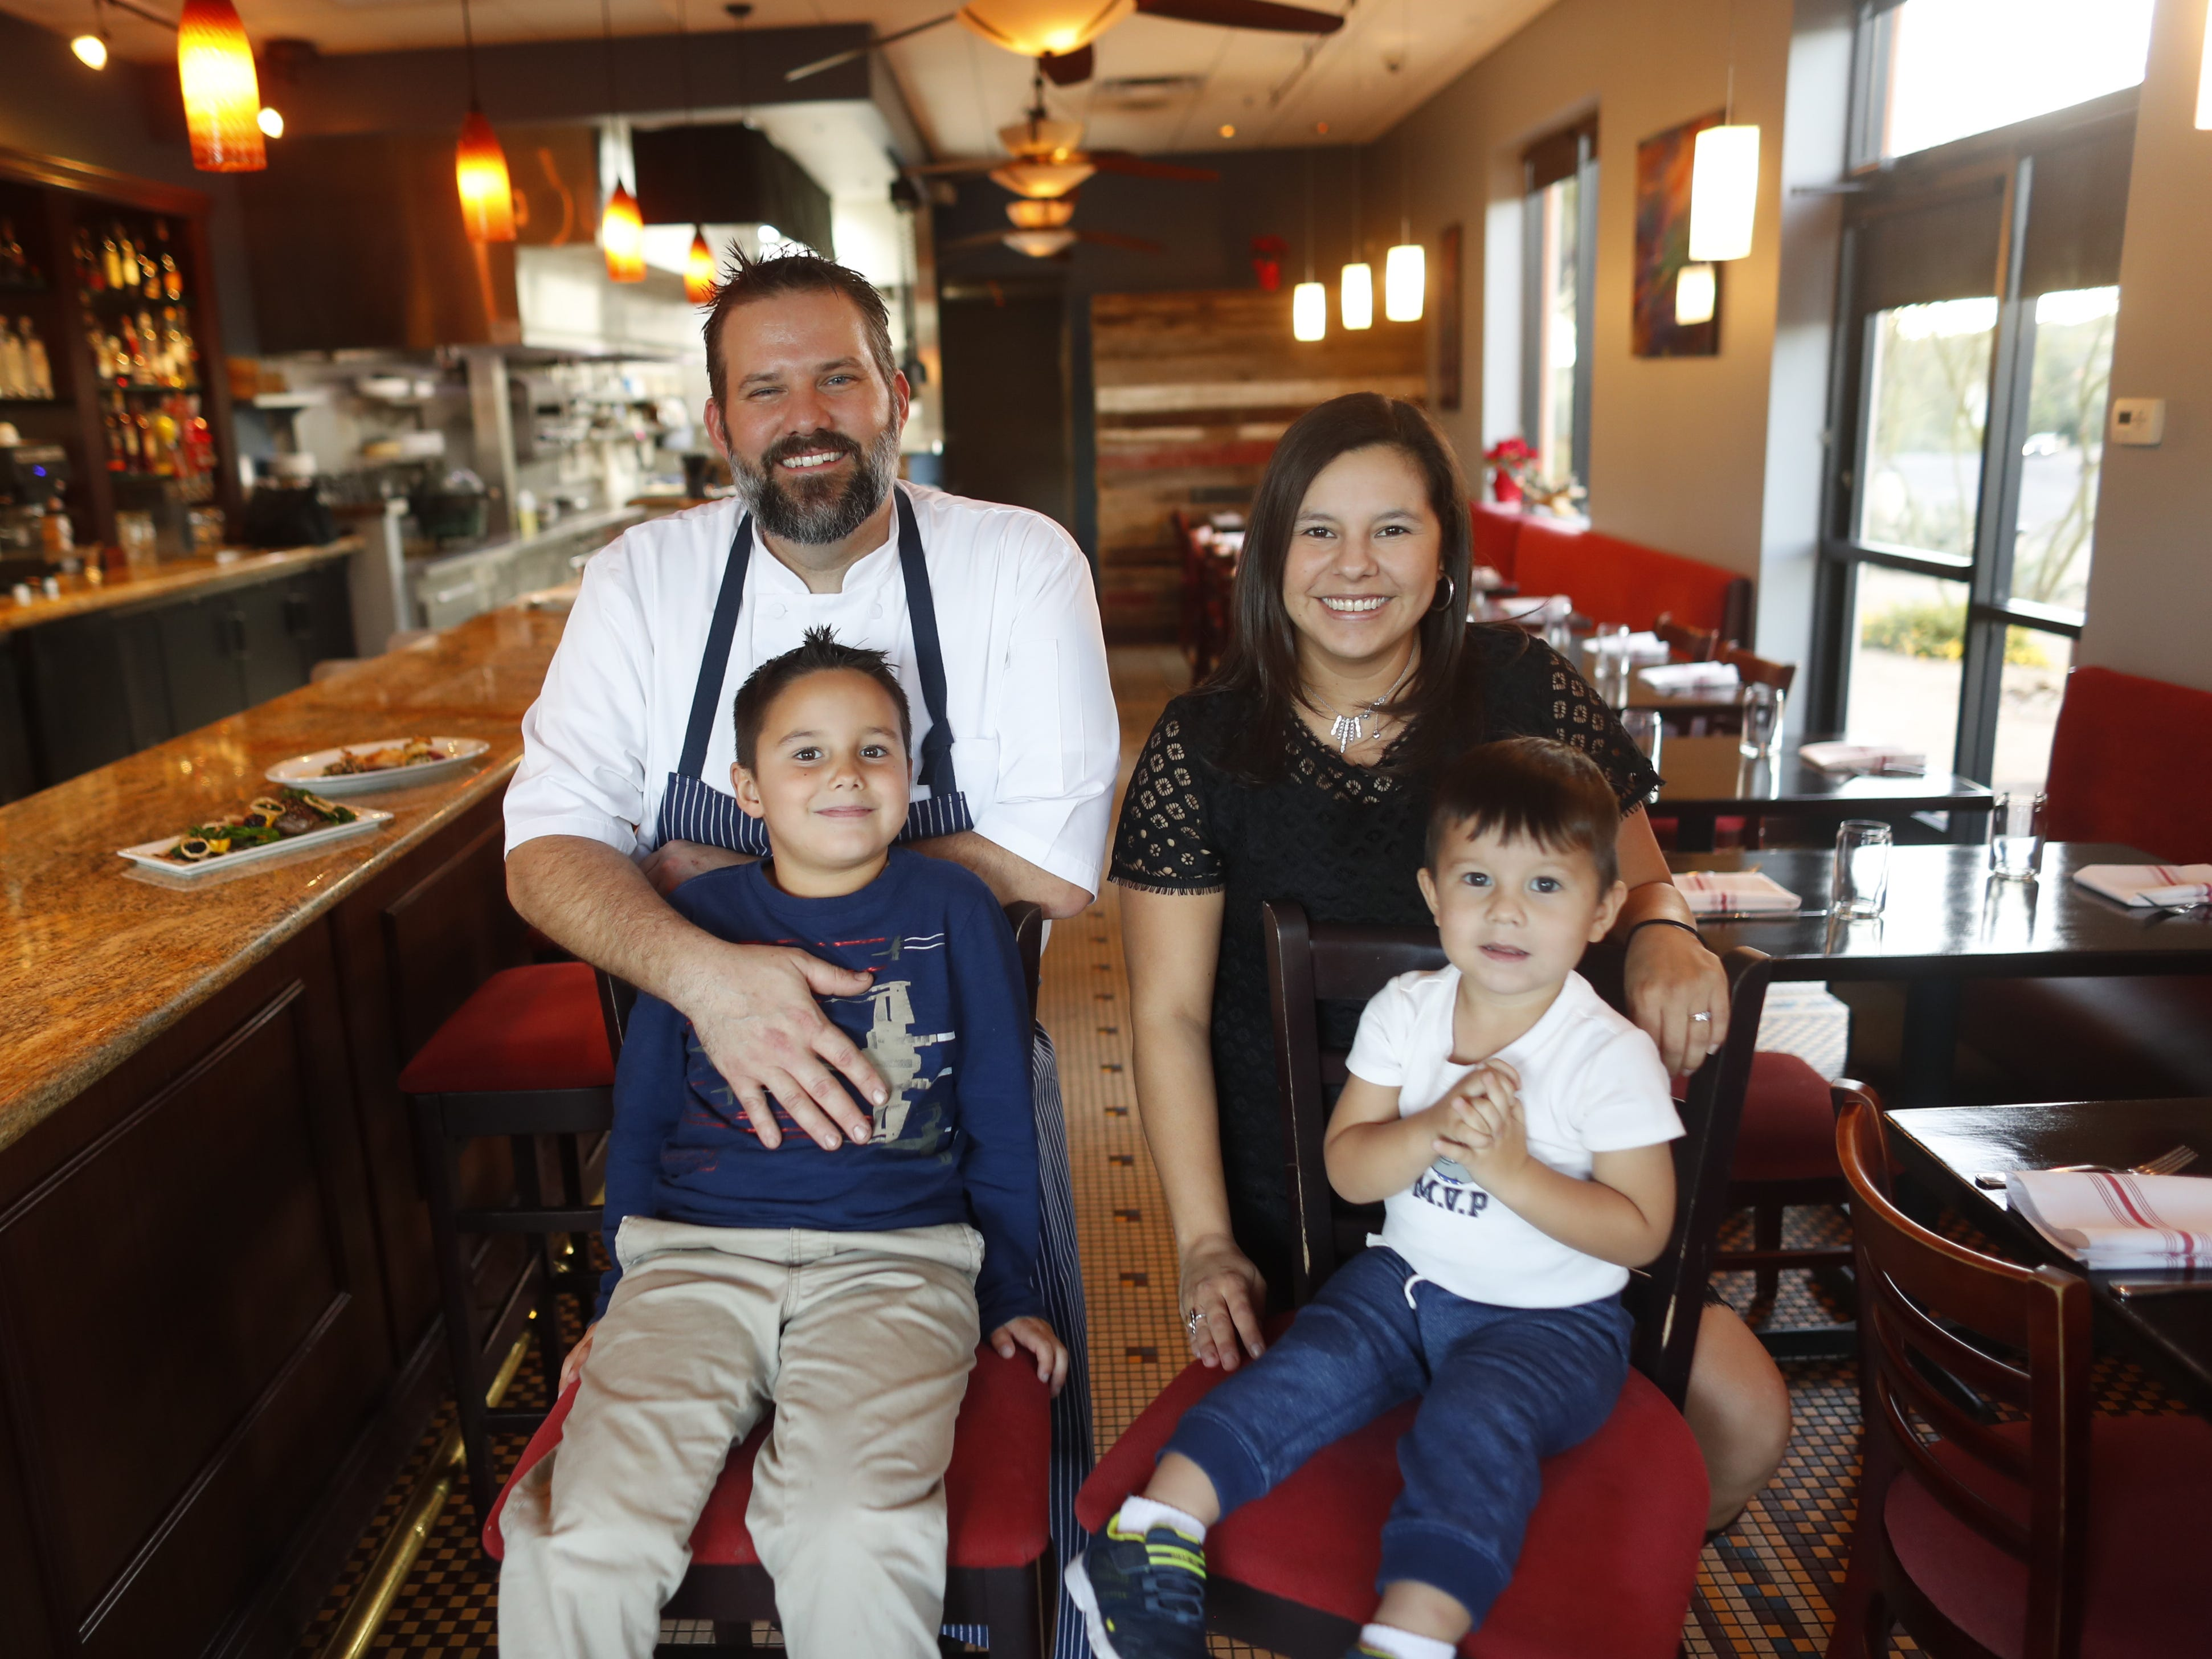 Chef Brandon Gauthier and his wife and house manager Victoria Gauthier with their children Jackson, 5, (L) and Elijah, 2, at Confluence in Carefree, Ariz. on December 3, 2018.